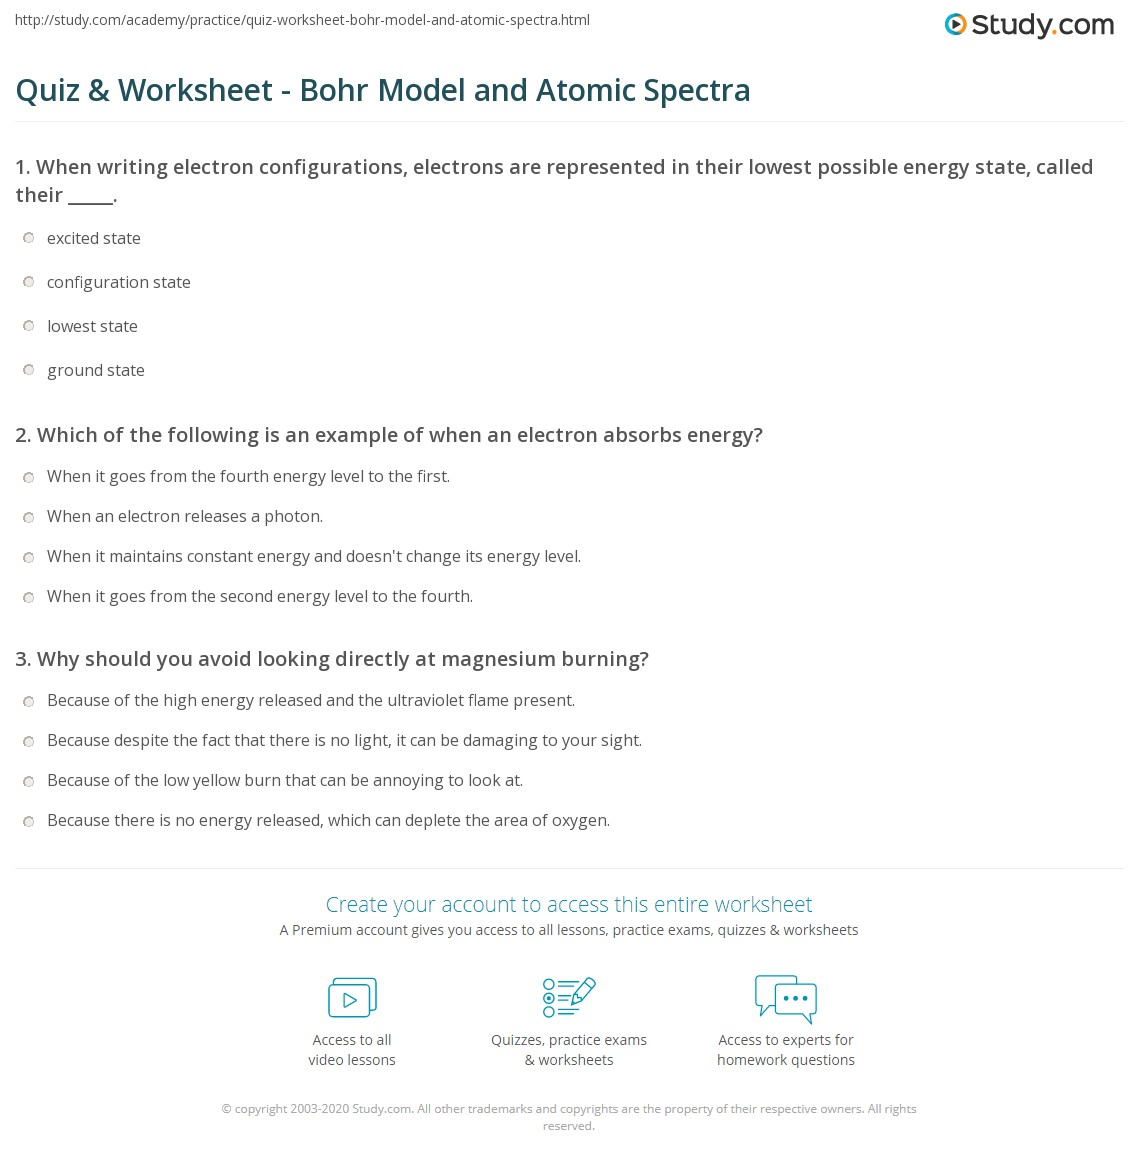 Print The Bohr Model And Atomic Spectra Worksheet